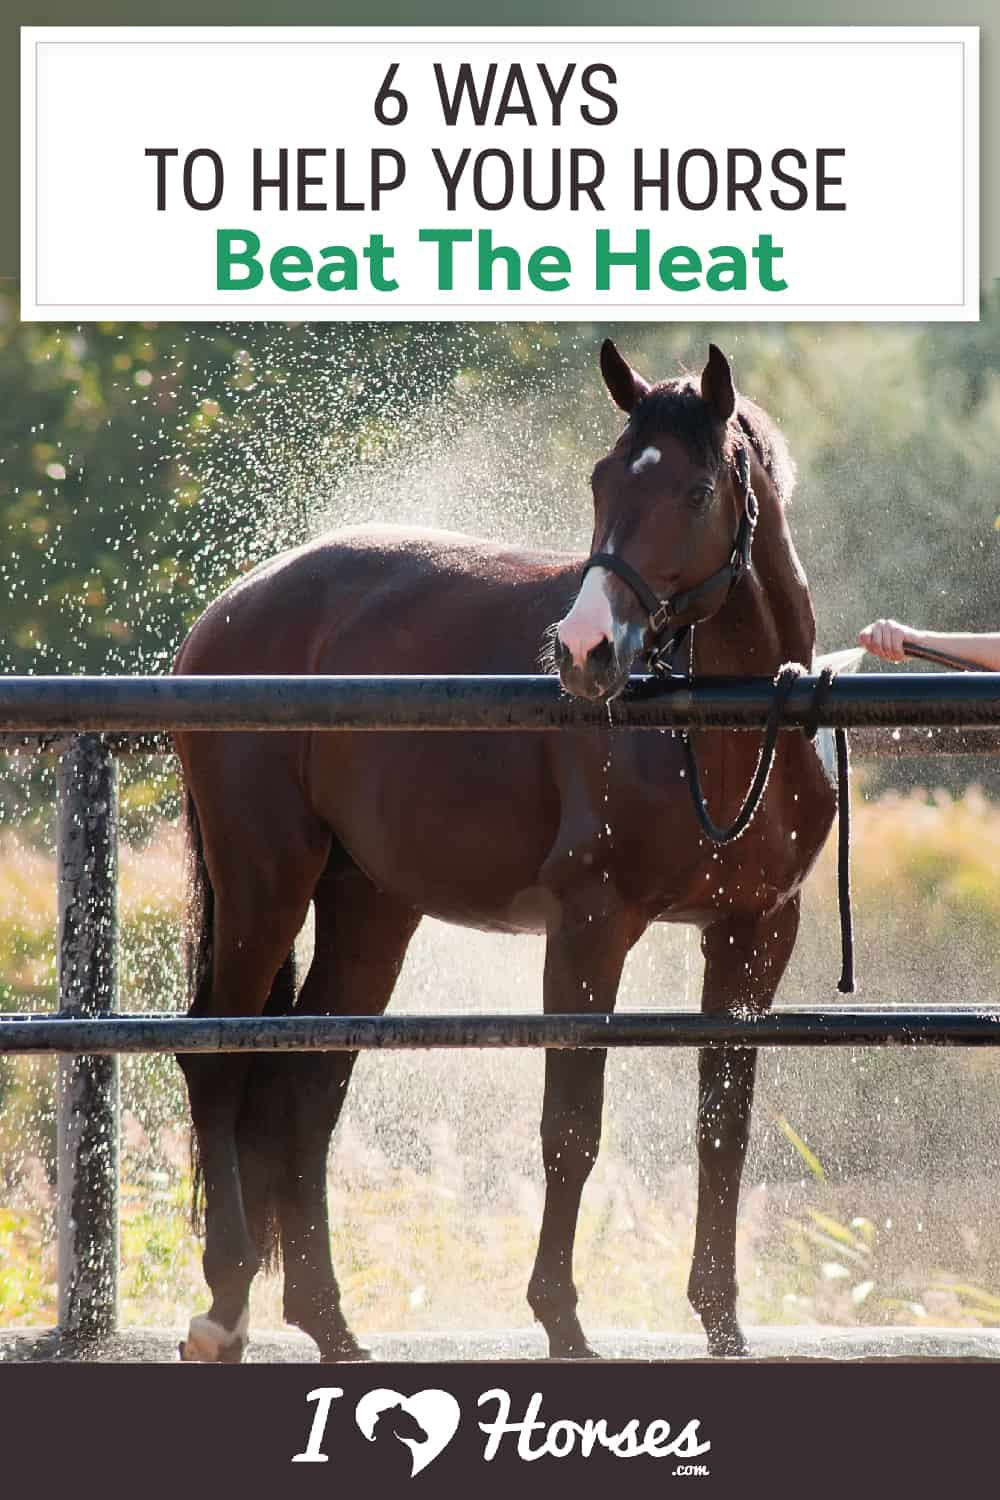 6 Ways To Help Your Horse Beat The Heat